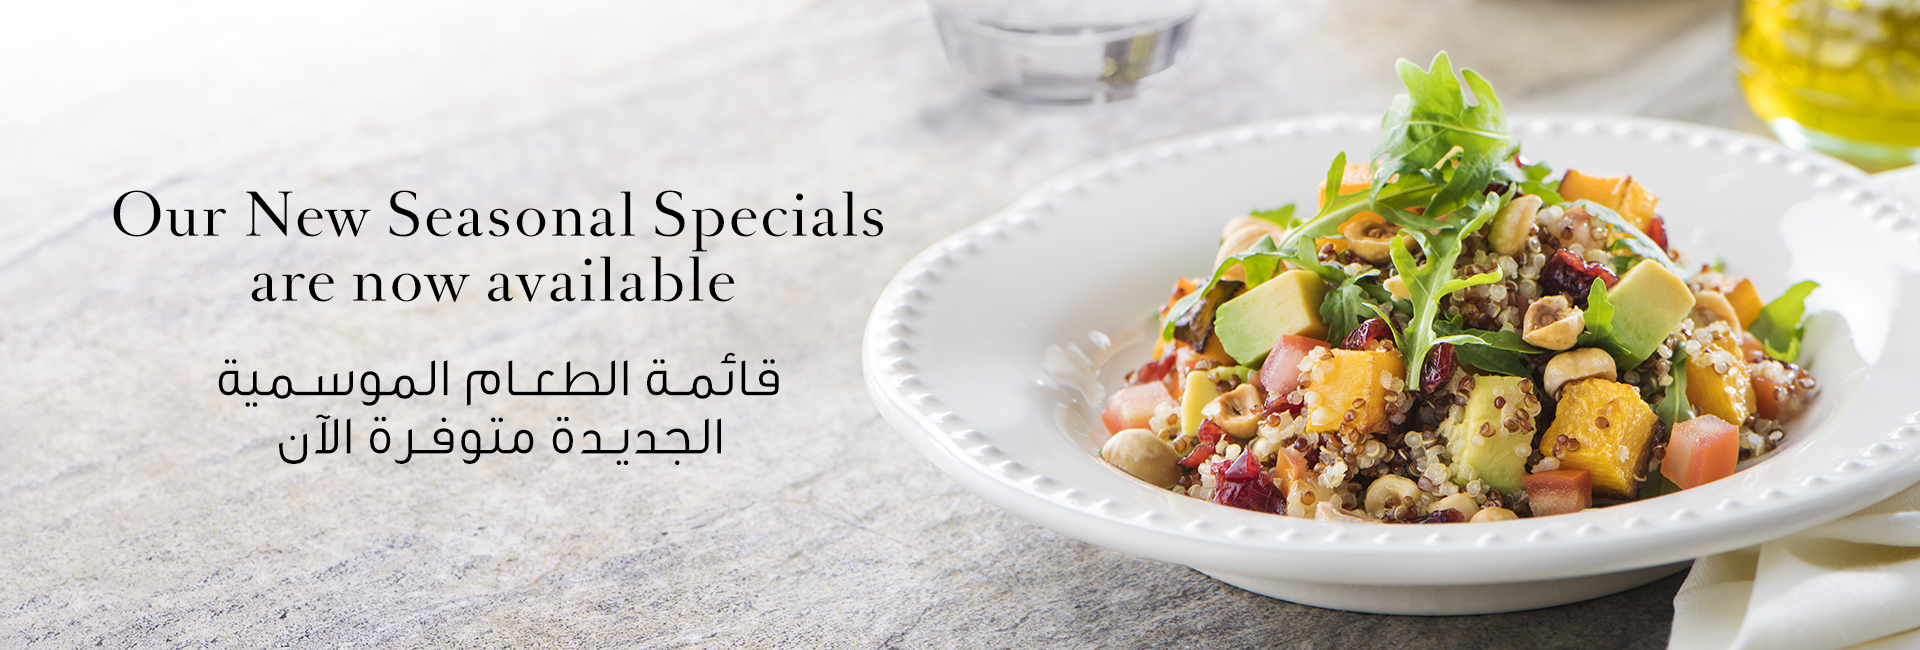 Bateel Winter Seasonal Menu